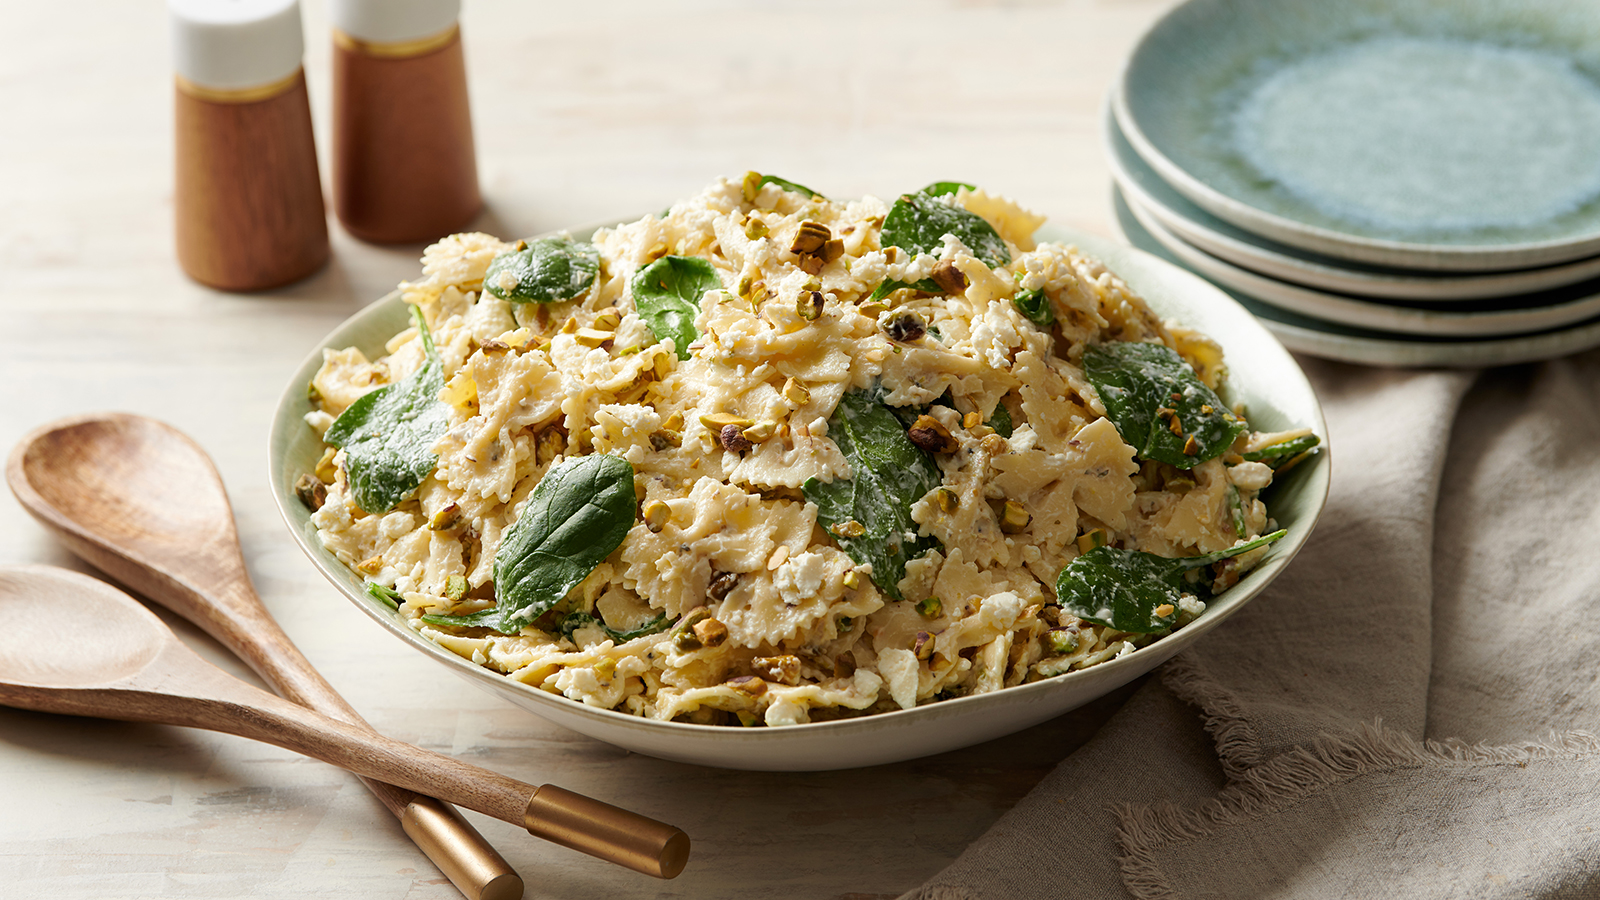 Lemon Farfalle Salad with Pistachios and Spinach